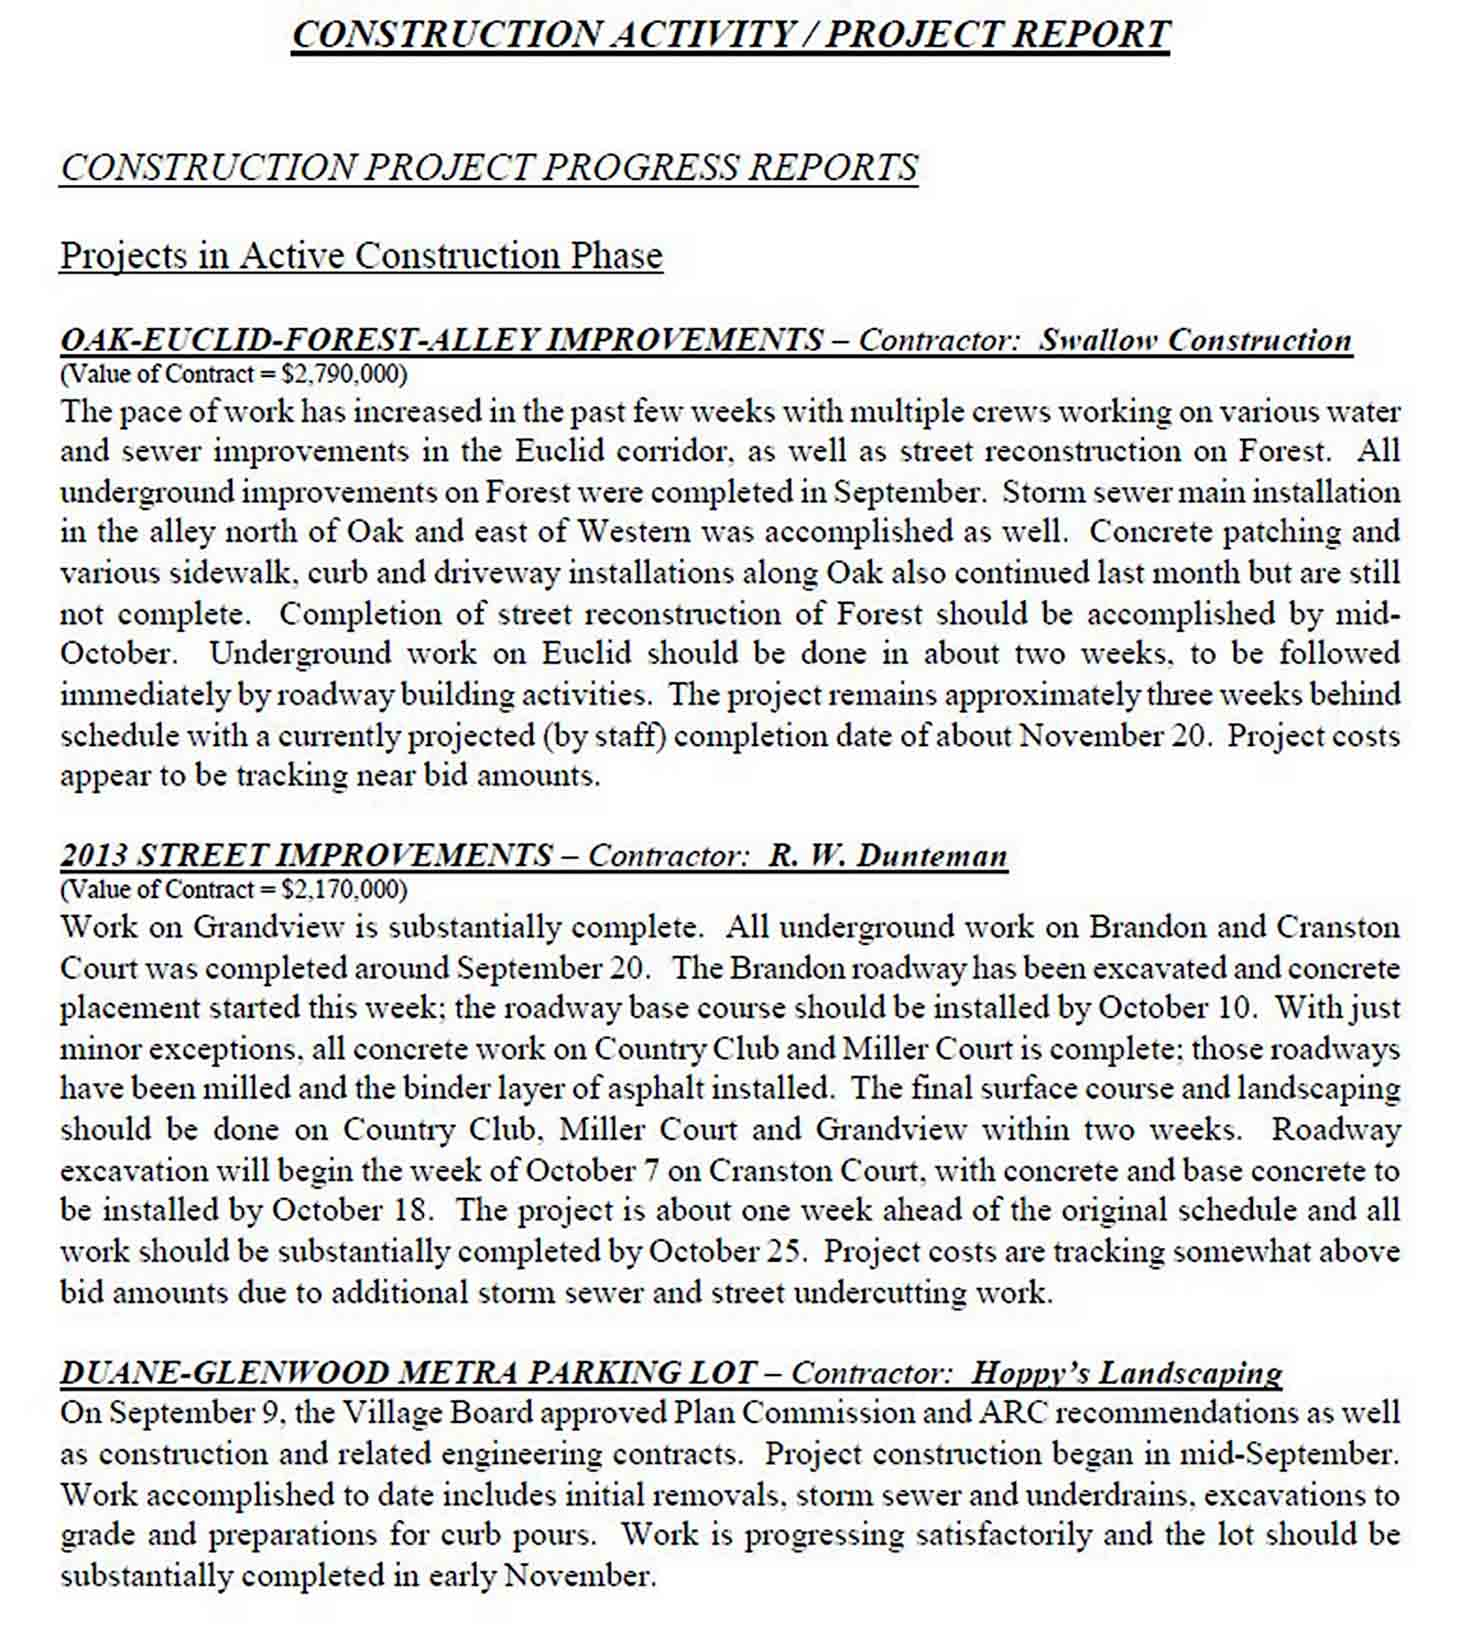 Construction Activity Project Report Template sample